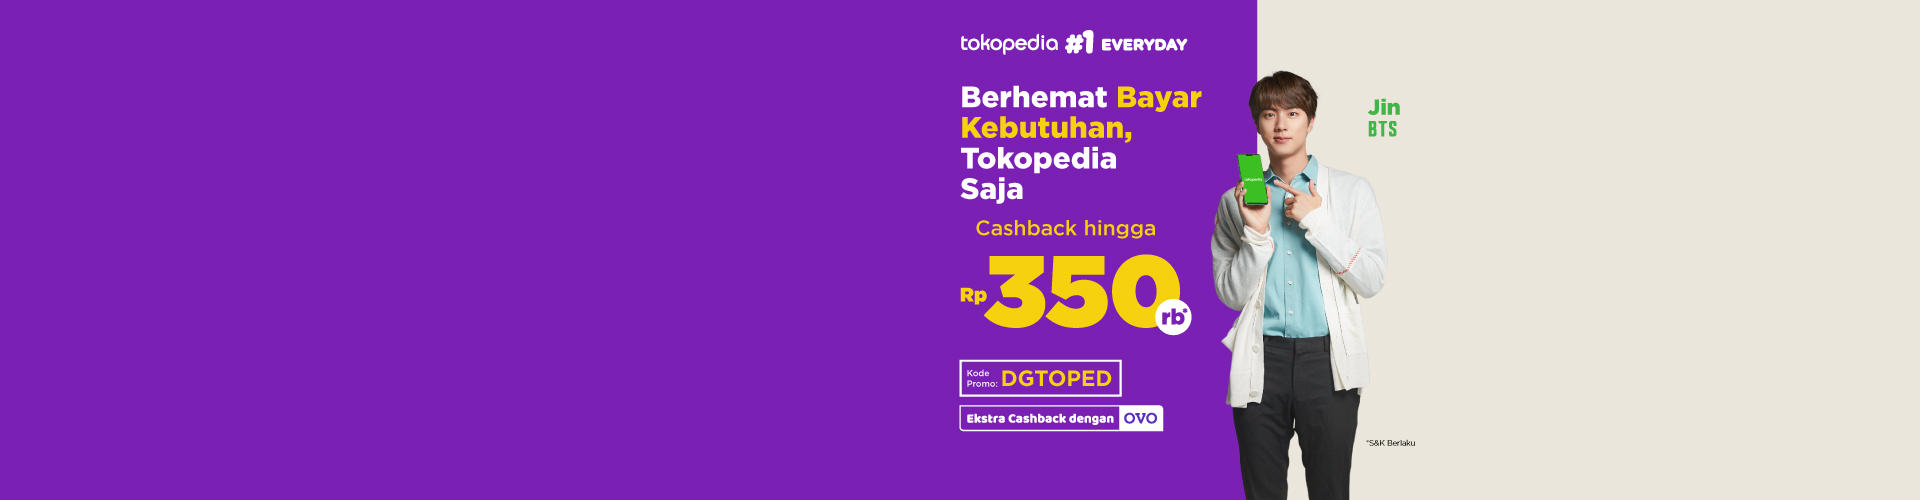 Dapatkan cashback up to 35rb!